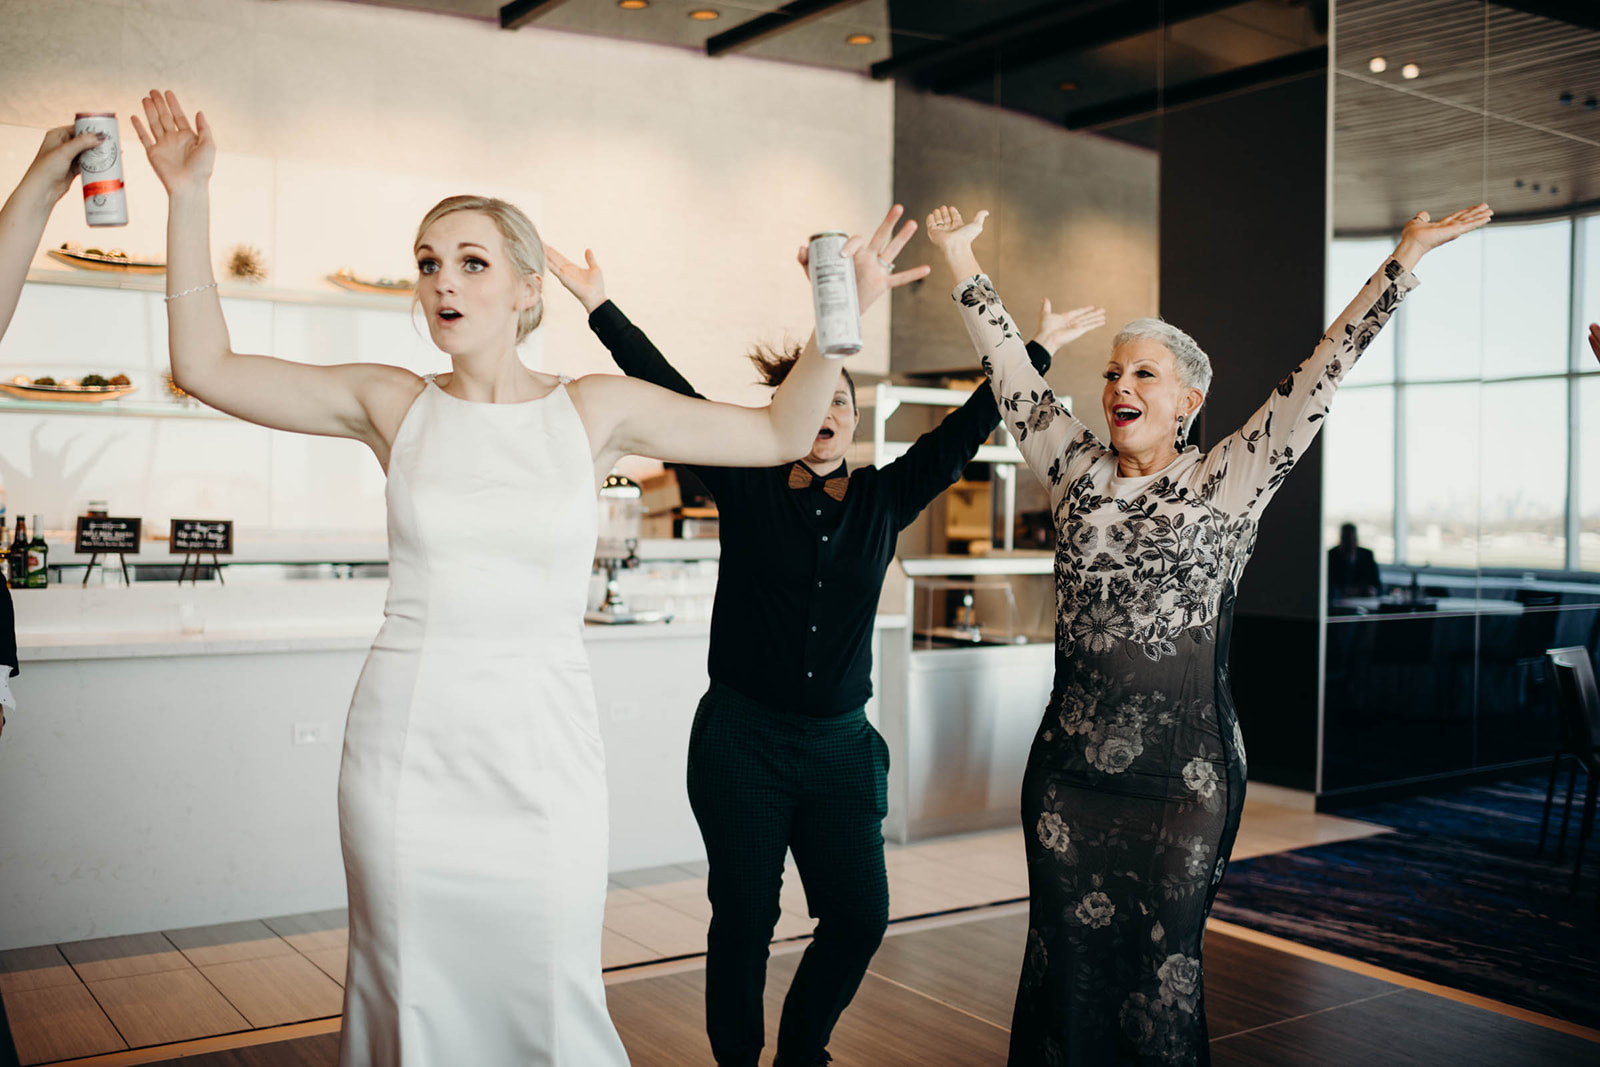 Bride dances with mother at wedding reception